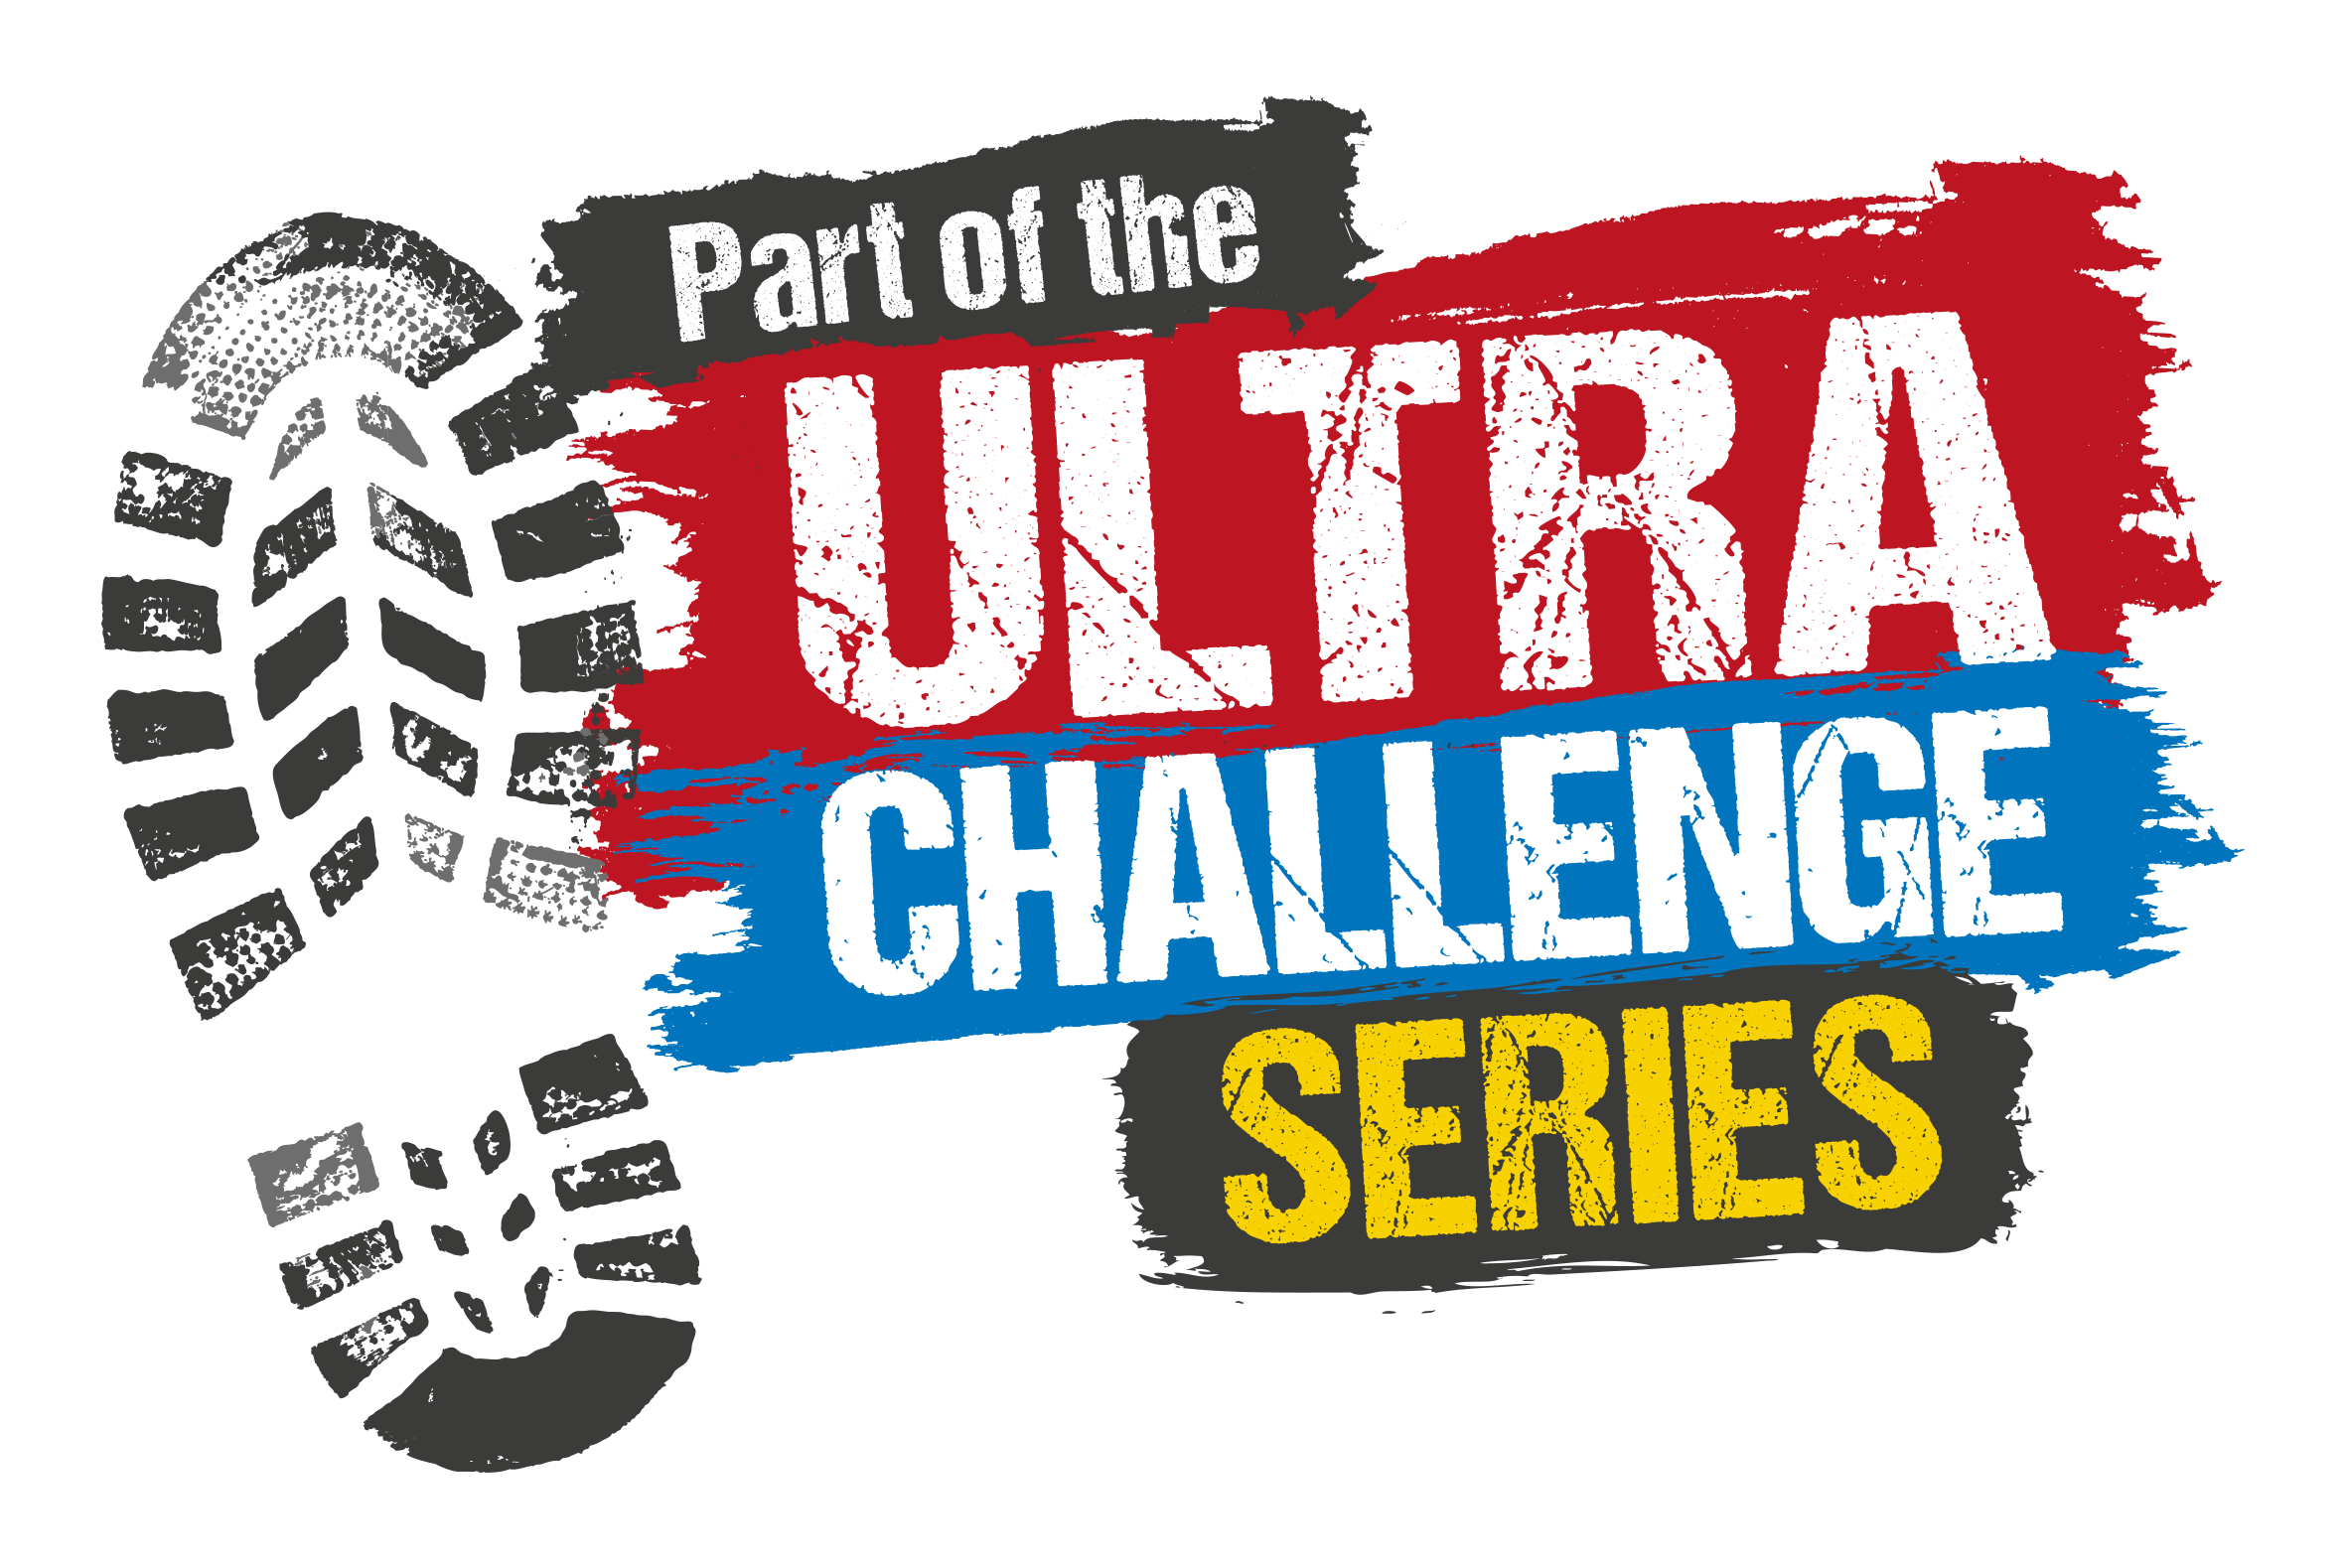 Are you ready for an Ultra Challenge?